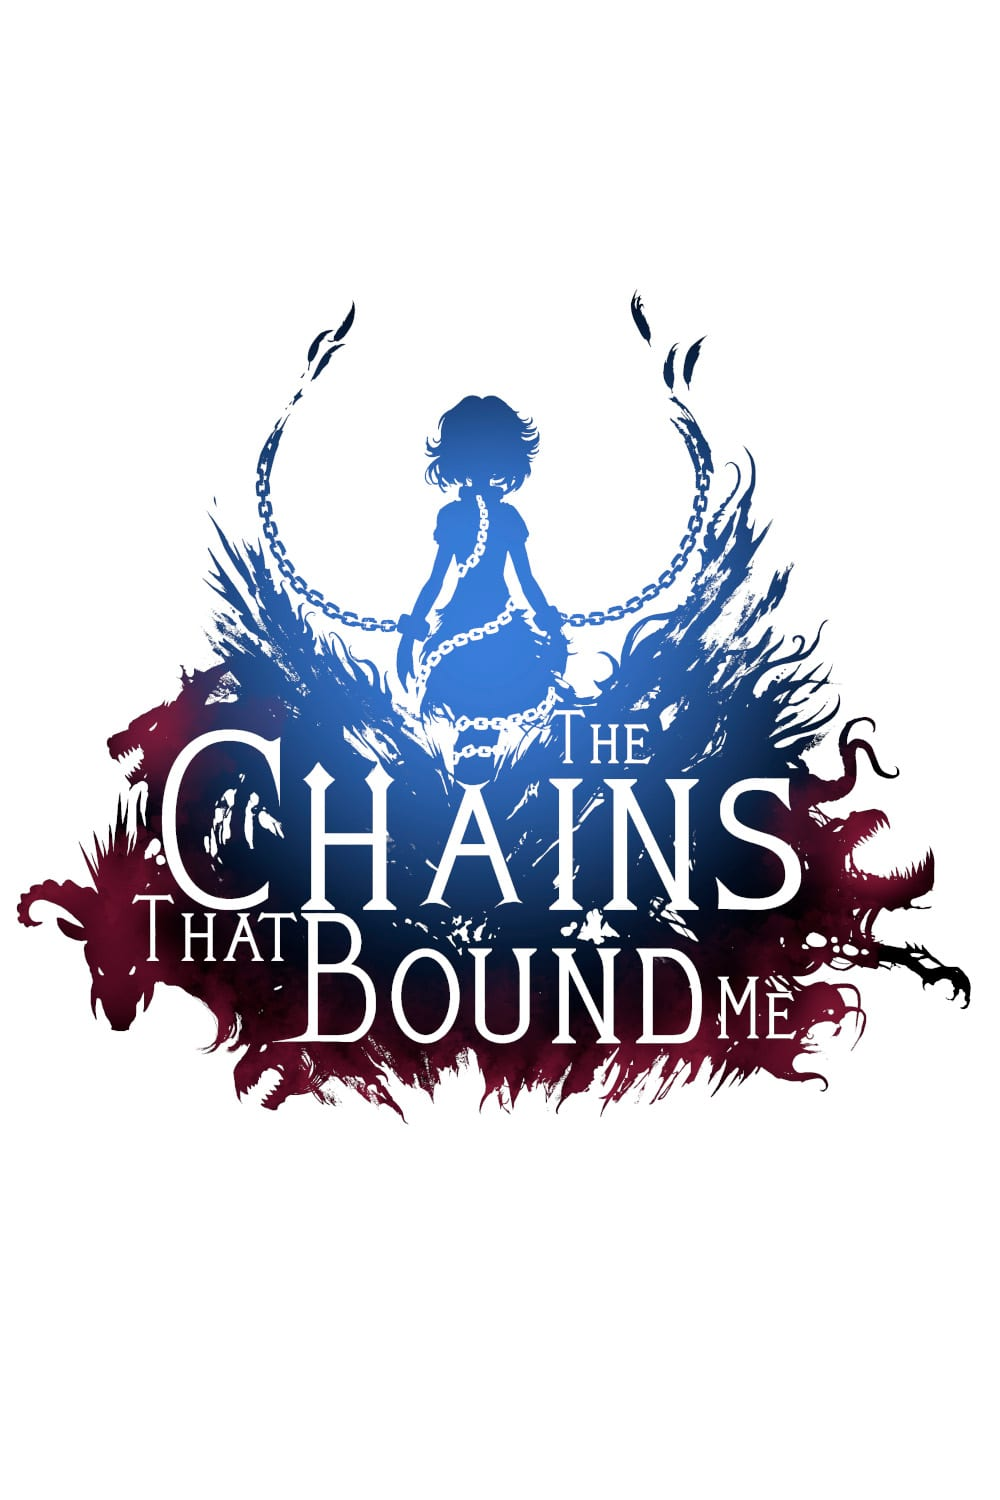 The Chains That Bound Me